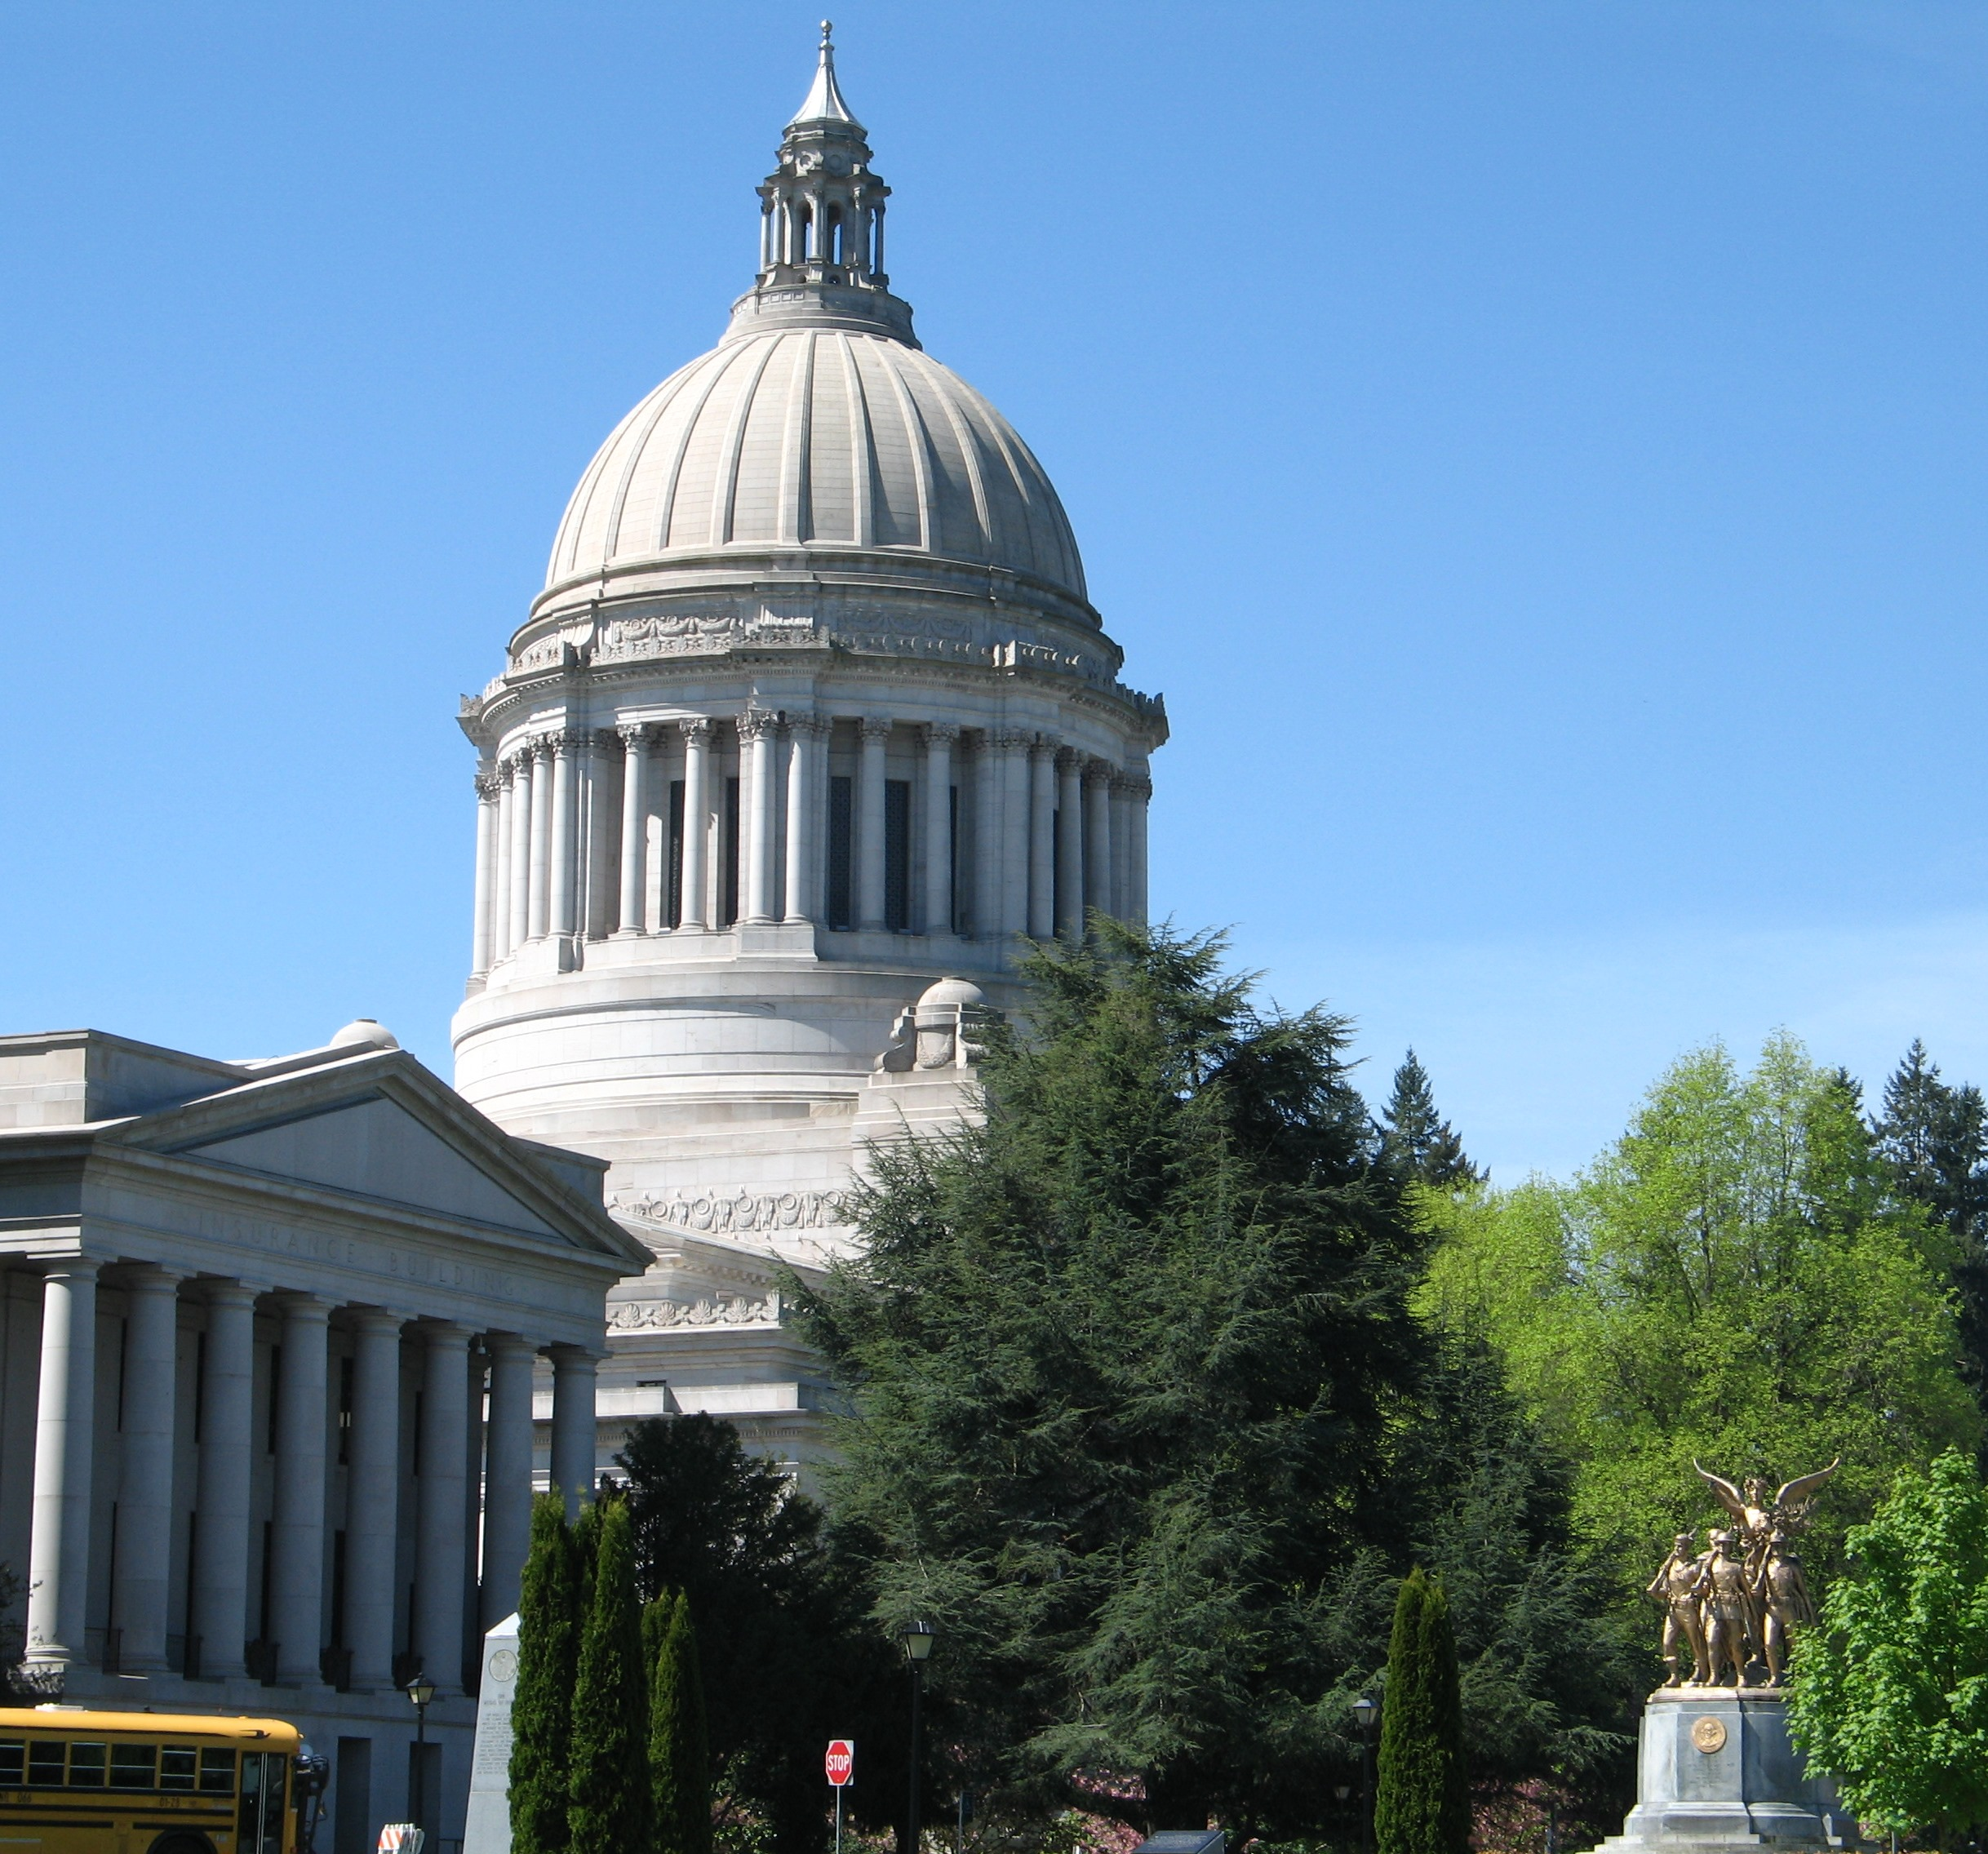 Capital Dome in Olympia